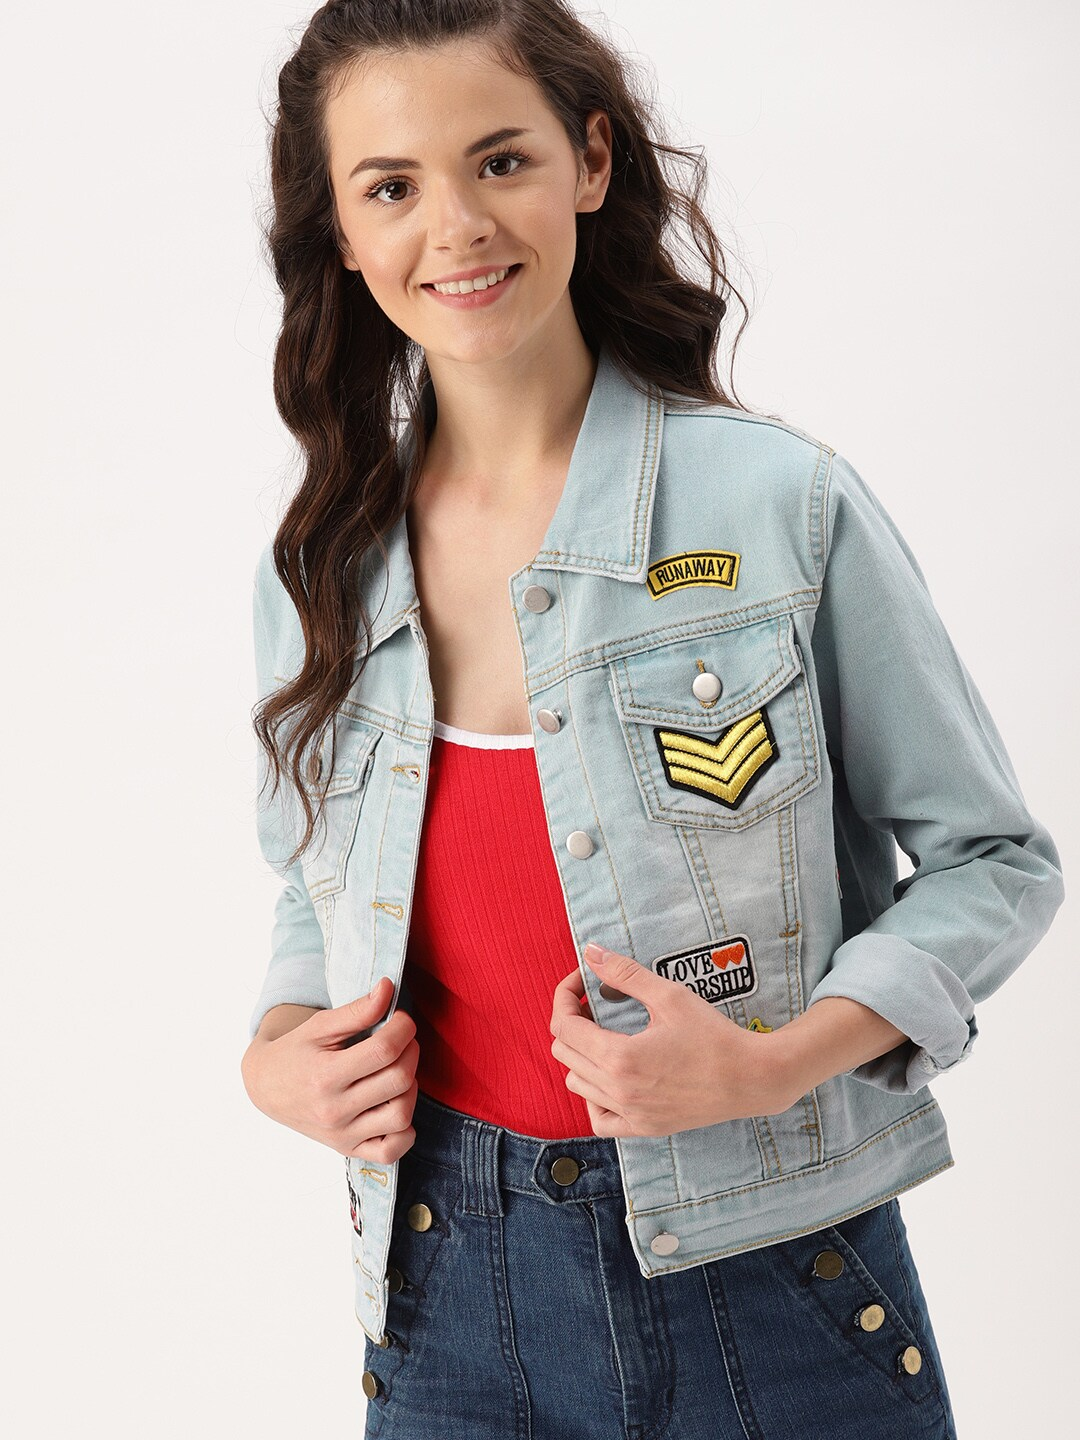 273e3403182 Jackets for Women - Buy Casual Leather Jackets for Women Online